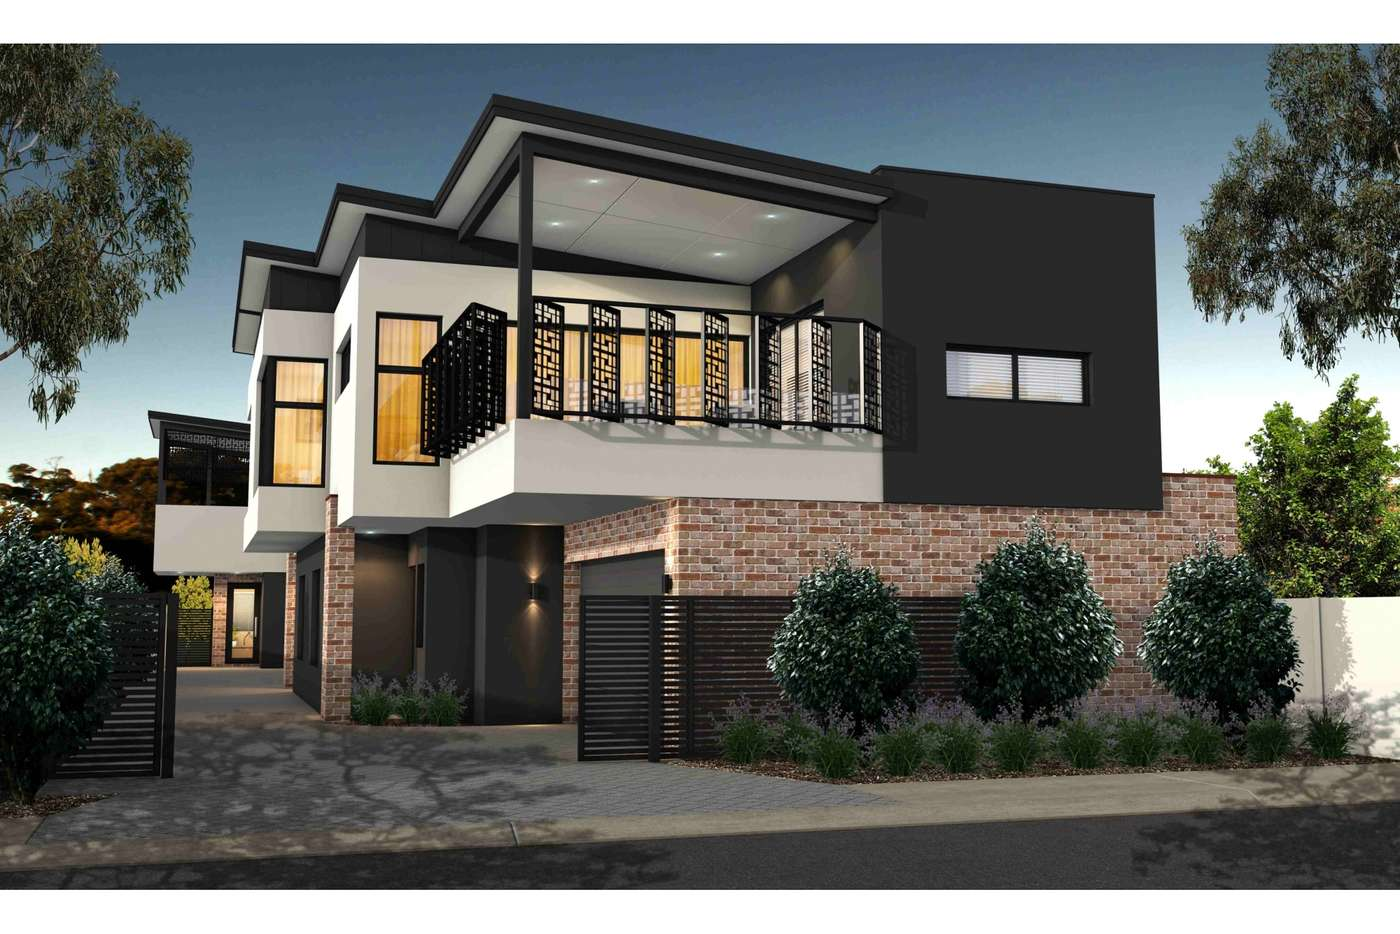 Main view of Homely house listing, 275 Walcott Street, North Perth WA 6006